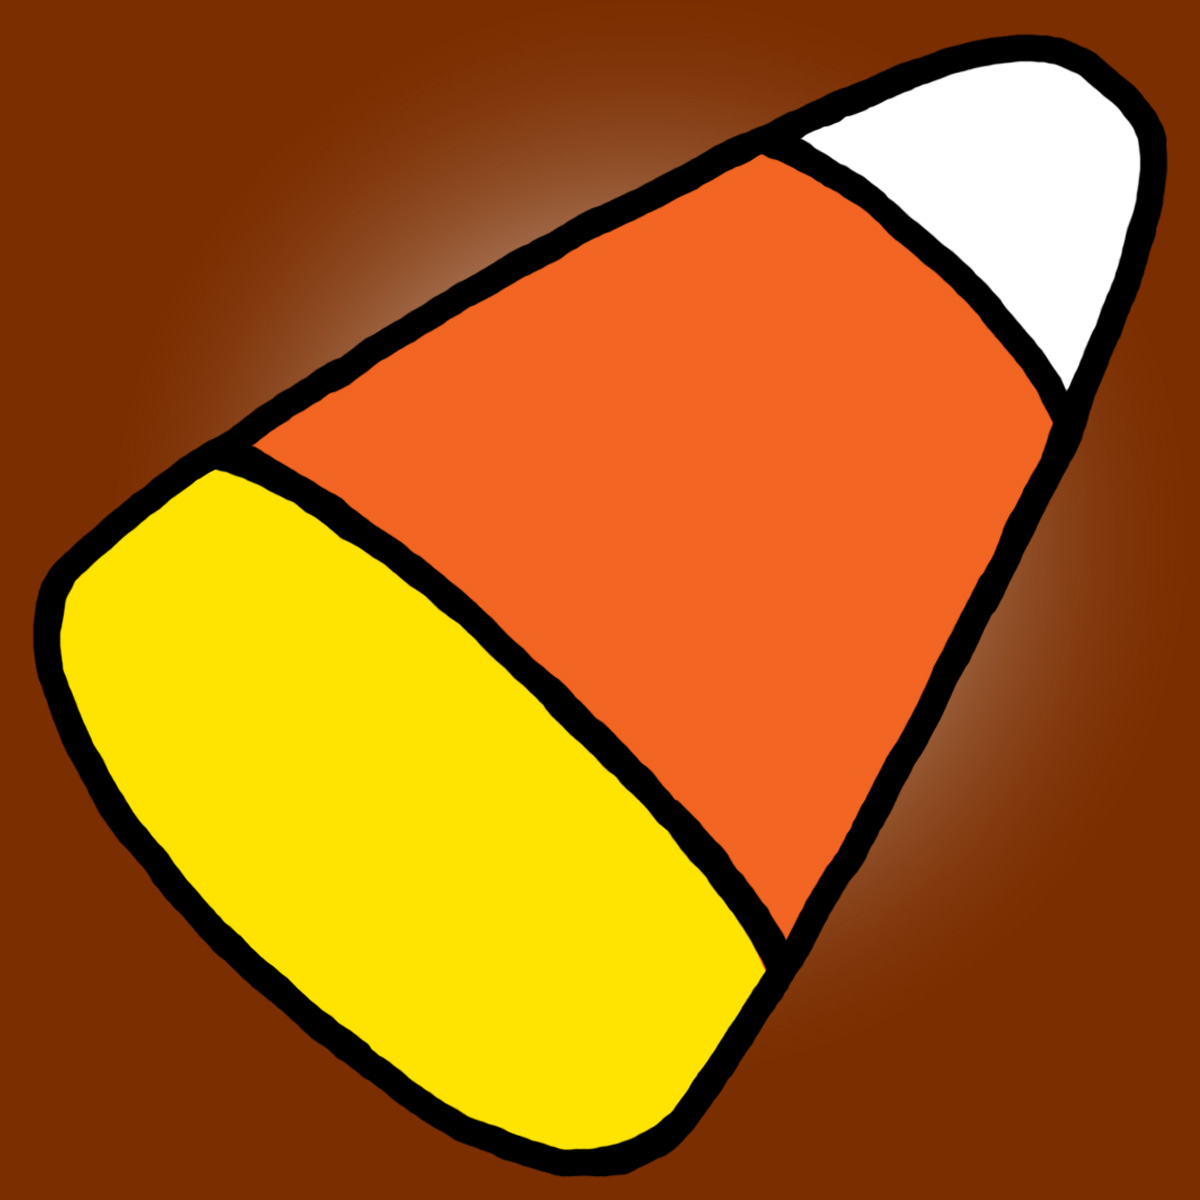 Tackling Life Together The Candy Corn Debacle